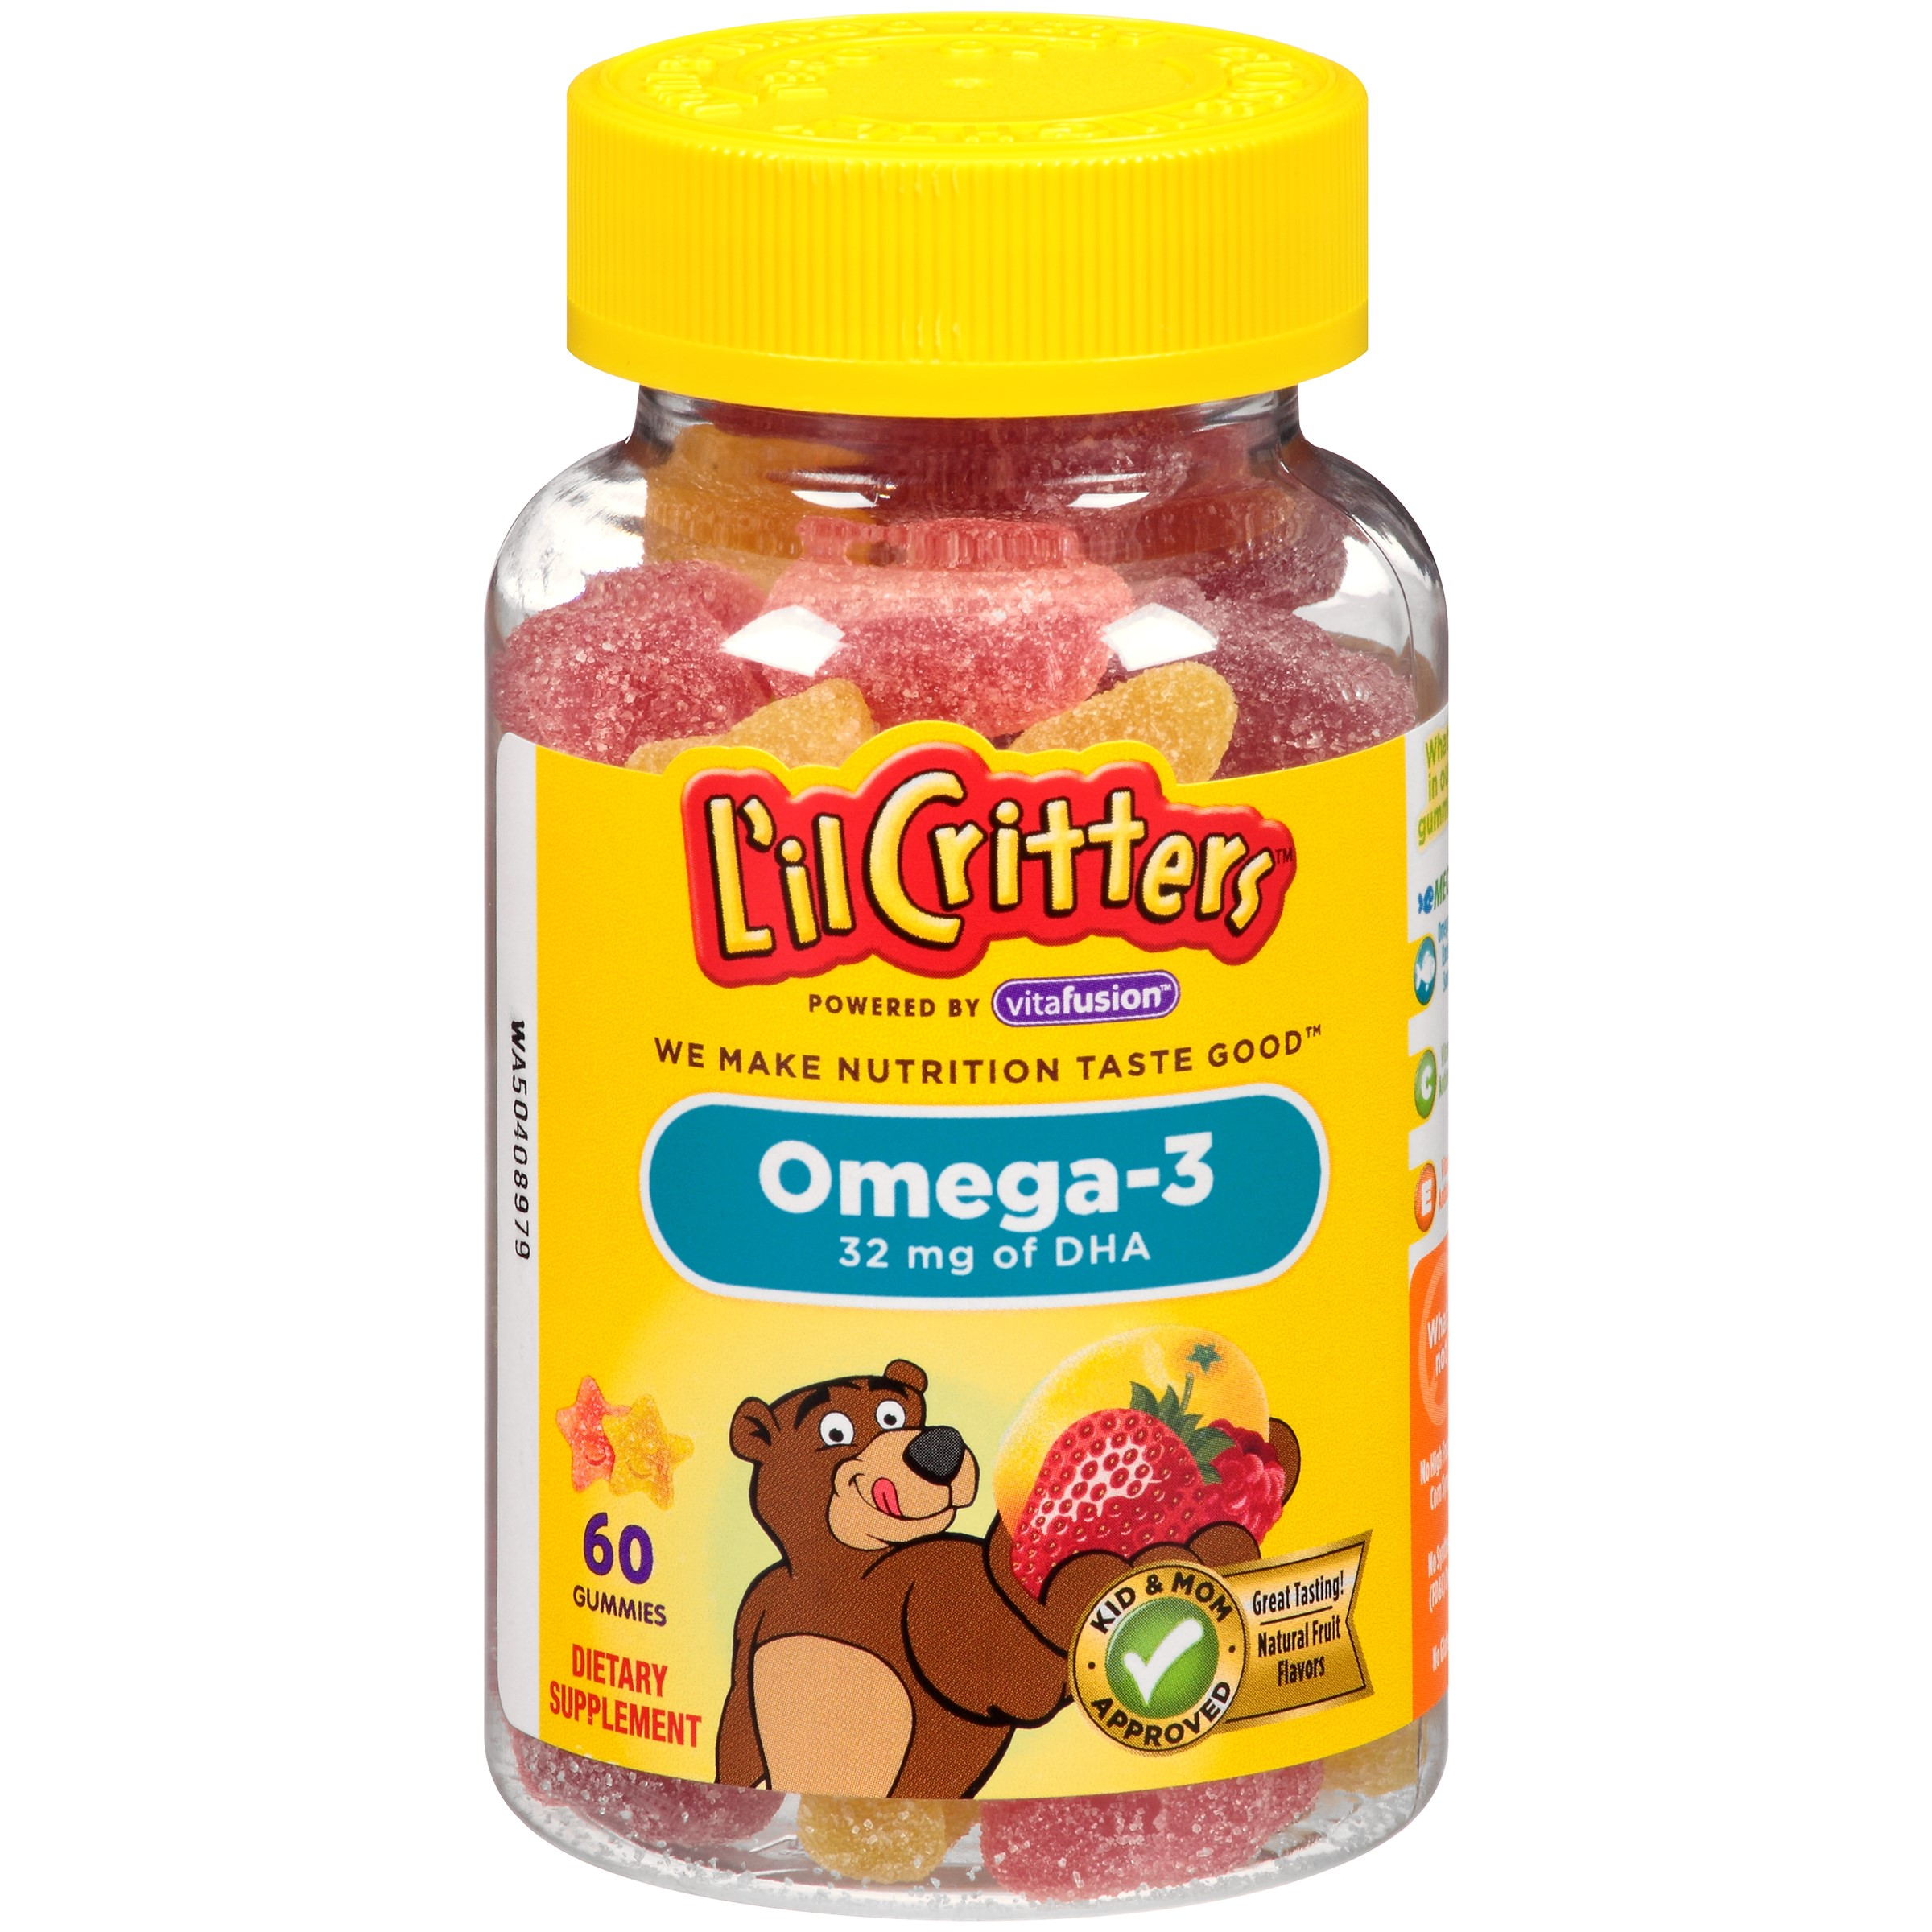 L'il Critters Omega-3 DHA, 60 Count